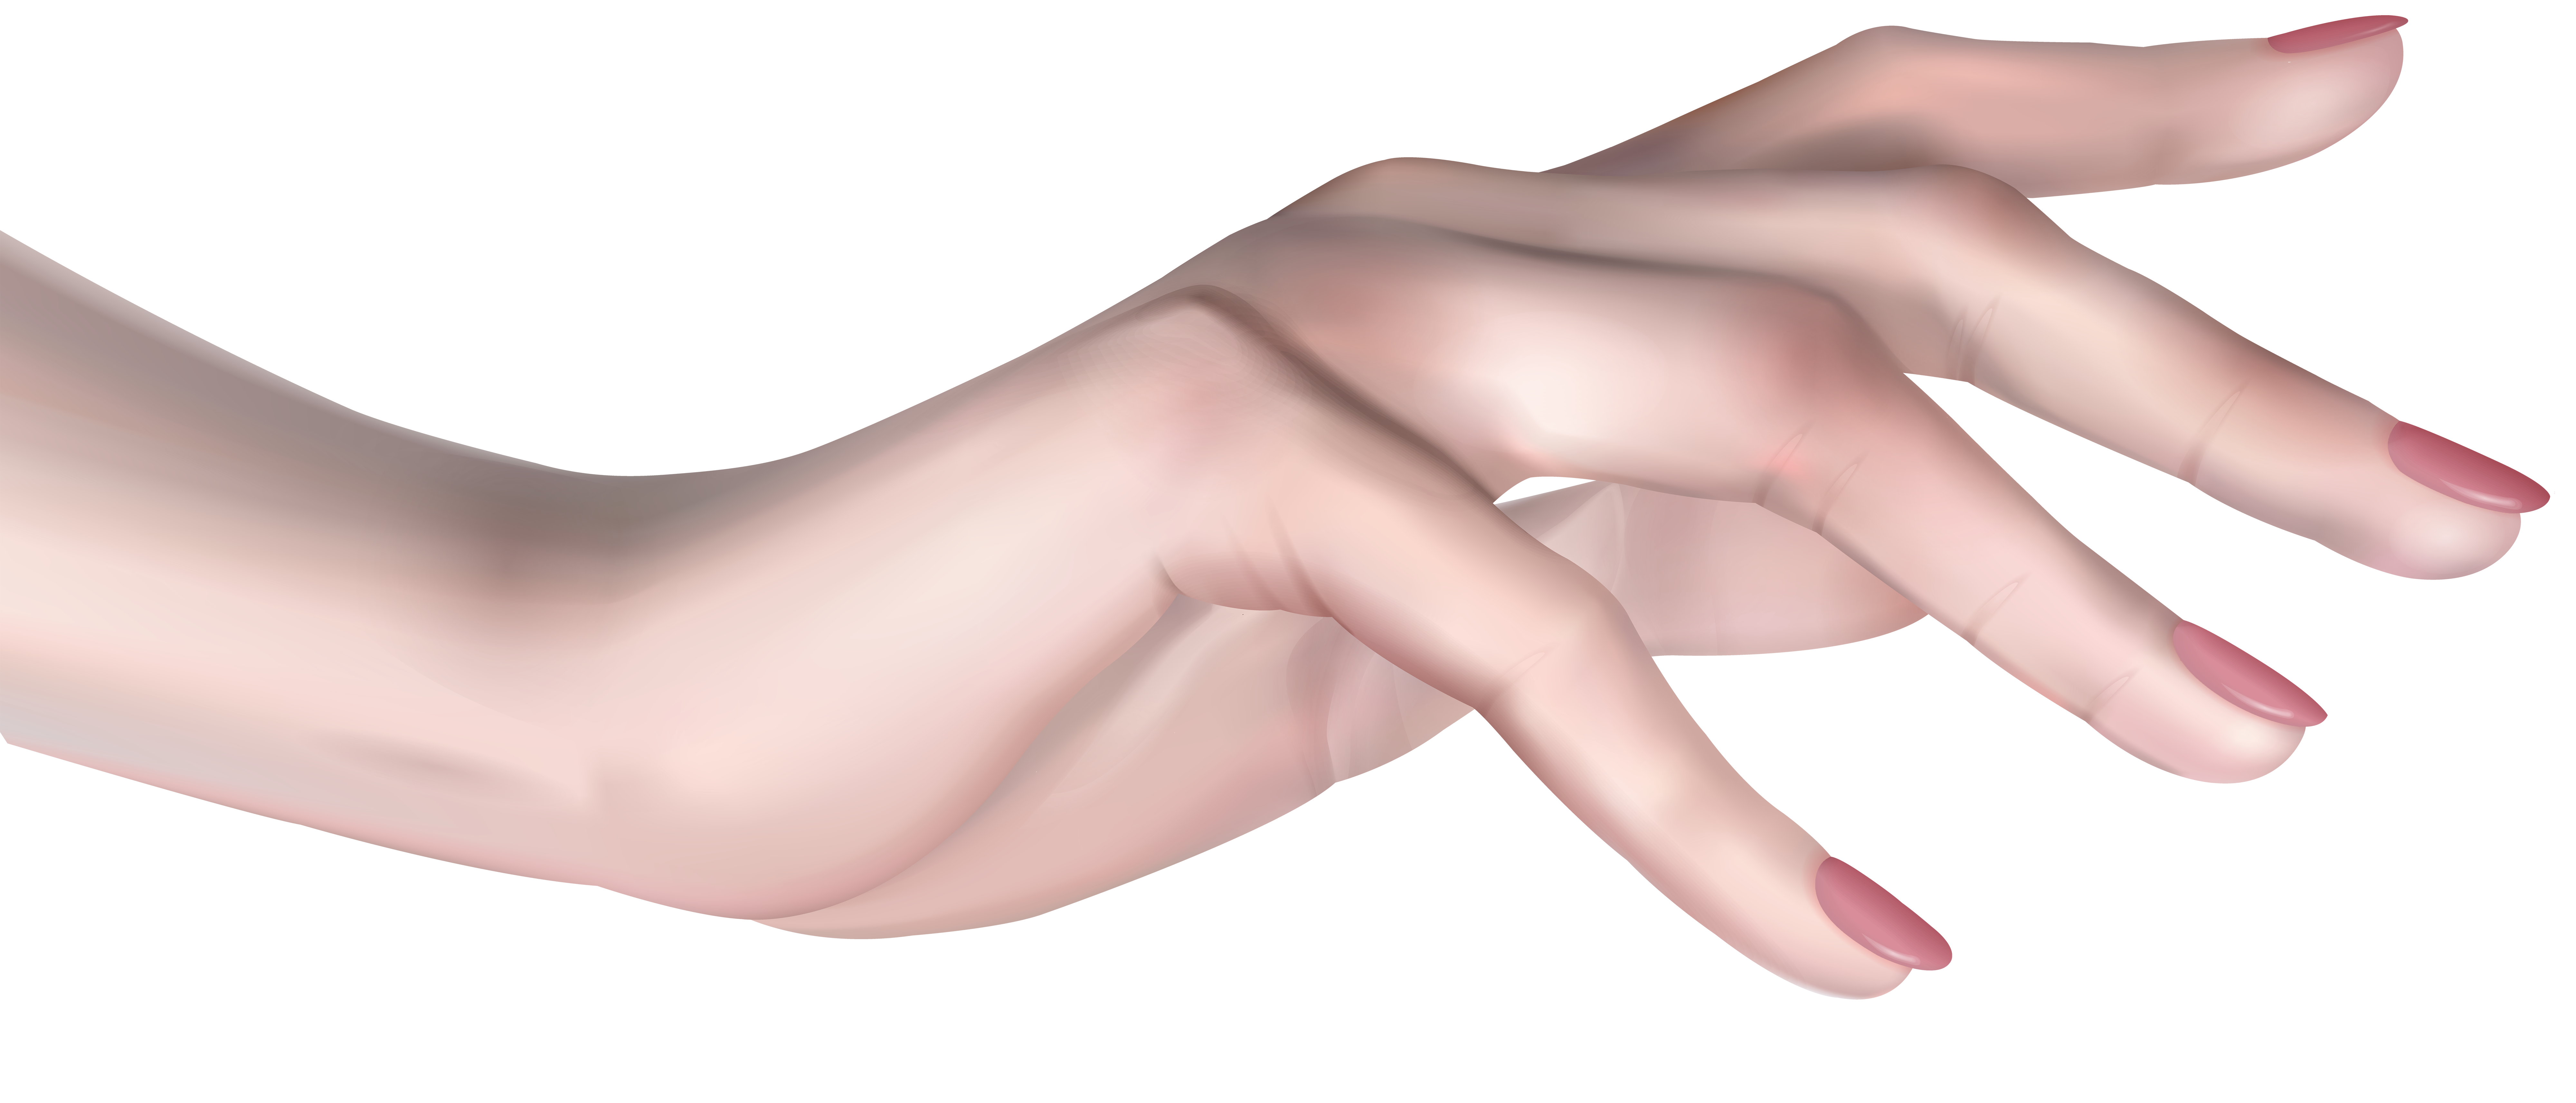 Female arm png. Hand clip art image